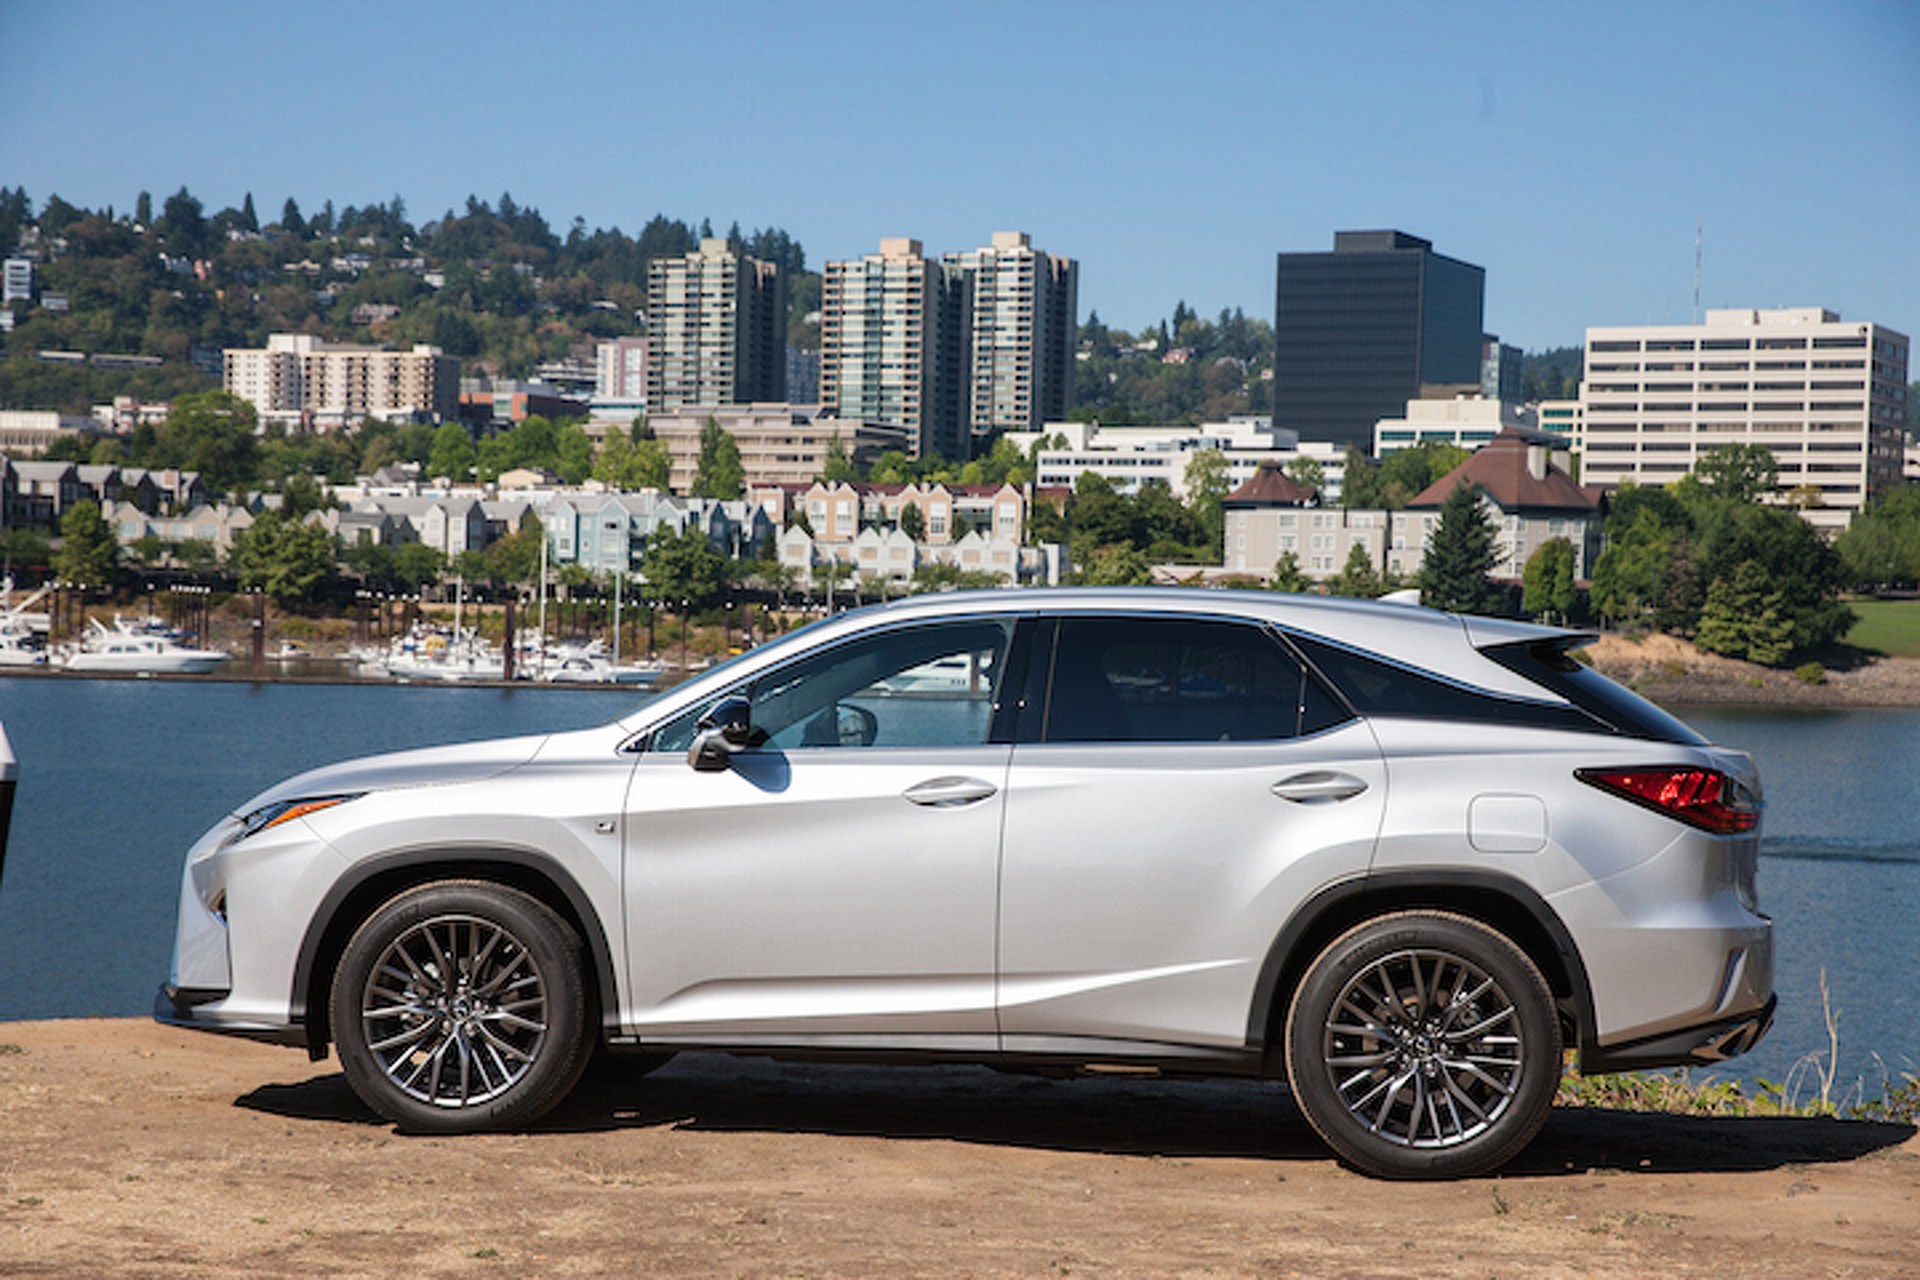 https://icdn-8.motor1.com/images/mgl/EOrJM/s1/the-2016-lexus-rx-350-f-sport-is-cohesive-insanity-review.jpg